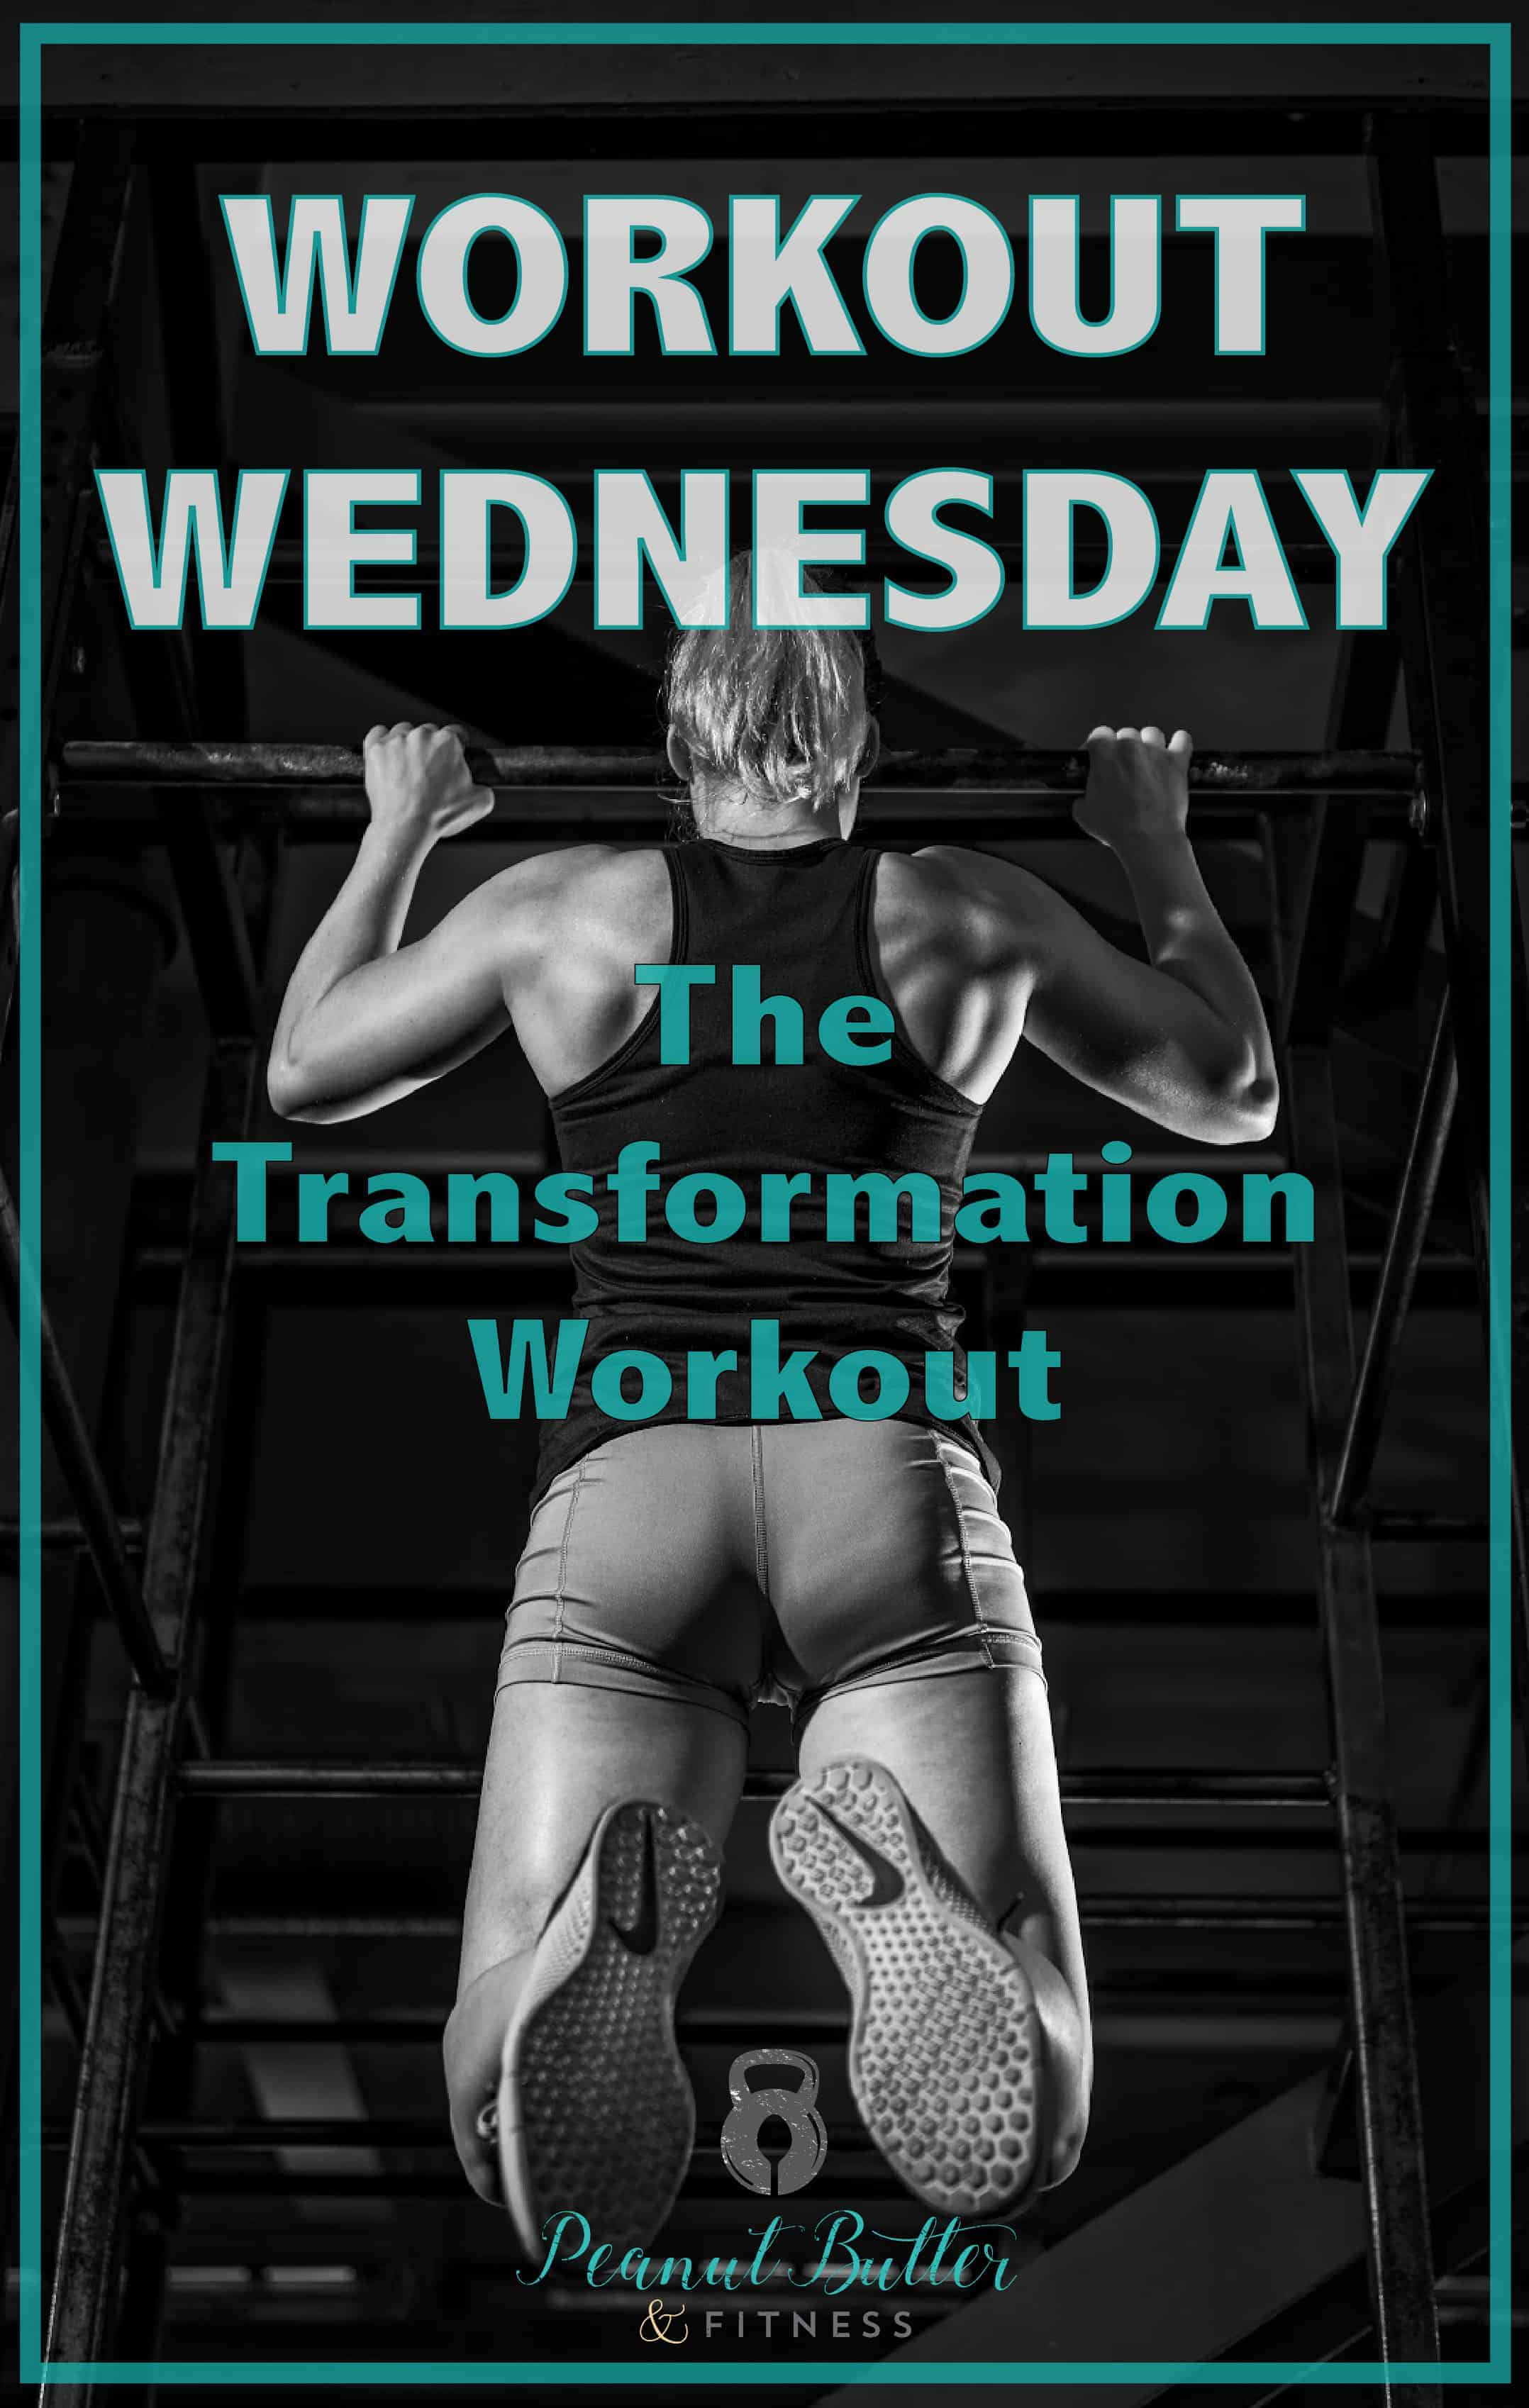 Workout wednesday - the transformation workout-01